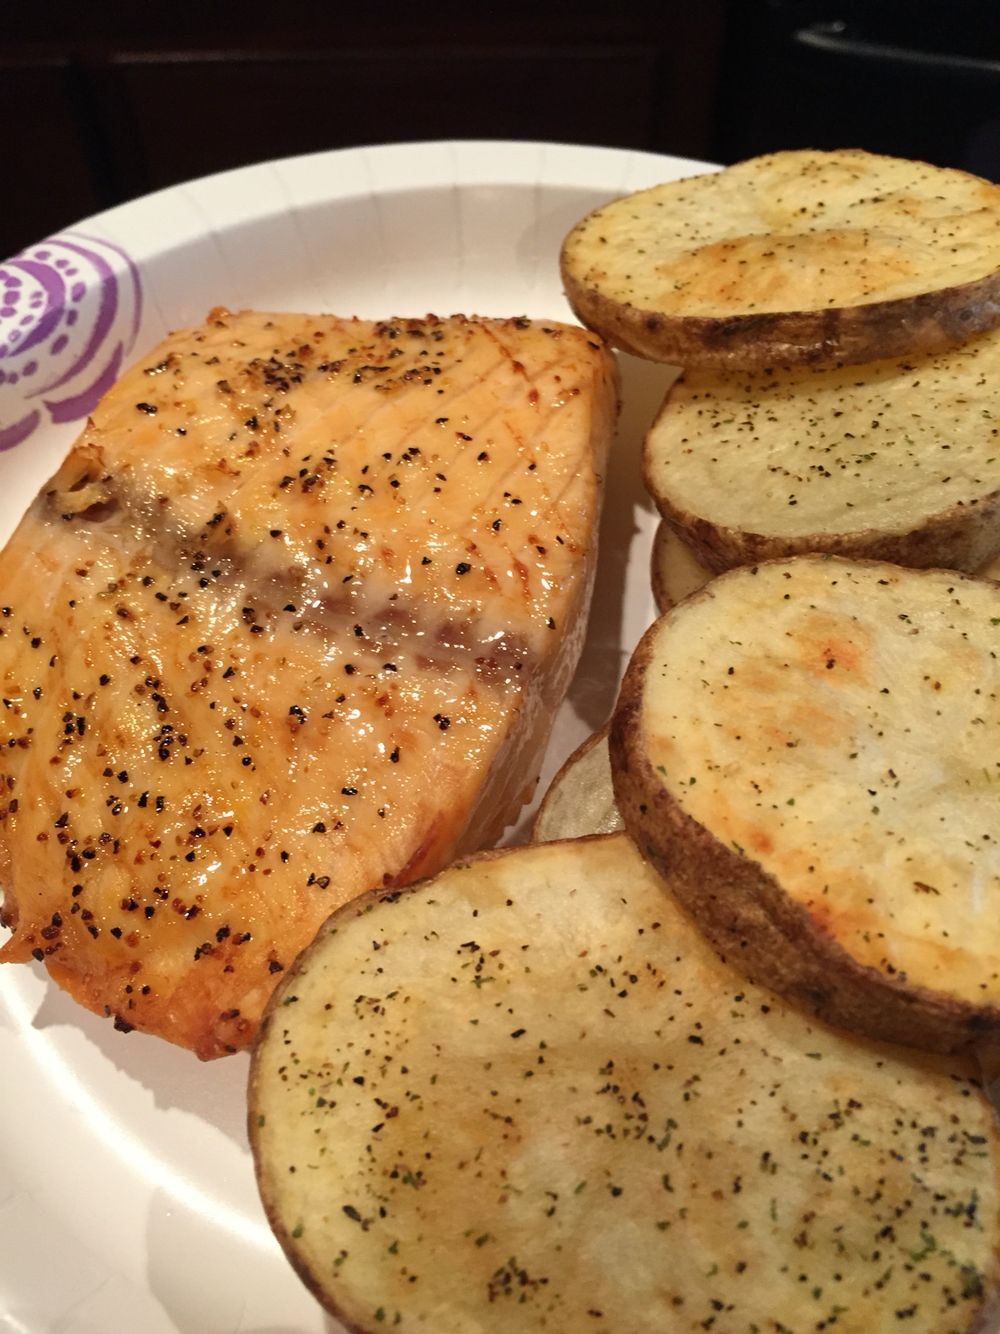 Nuwave Oven Salmon Seasoned With Lemon Pepper And Salt And Potatoes Cooked For 12 Mins On Each